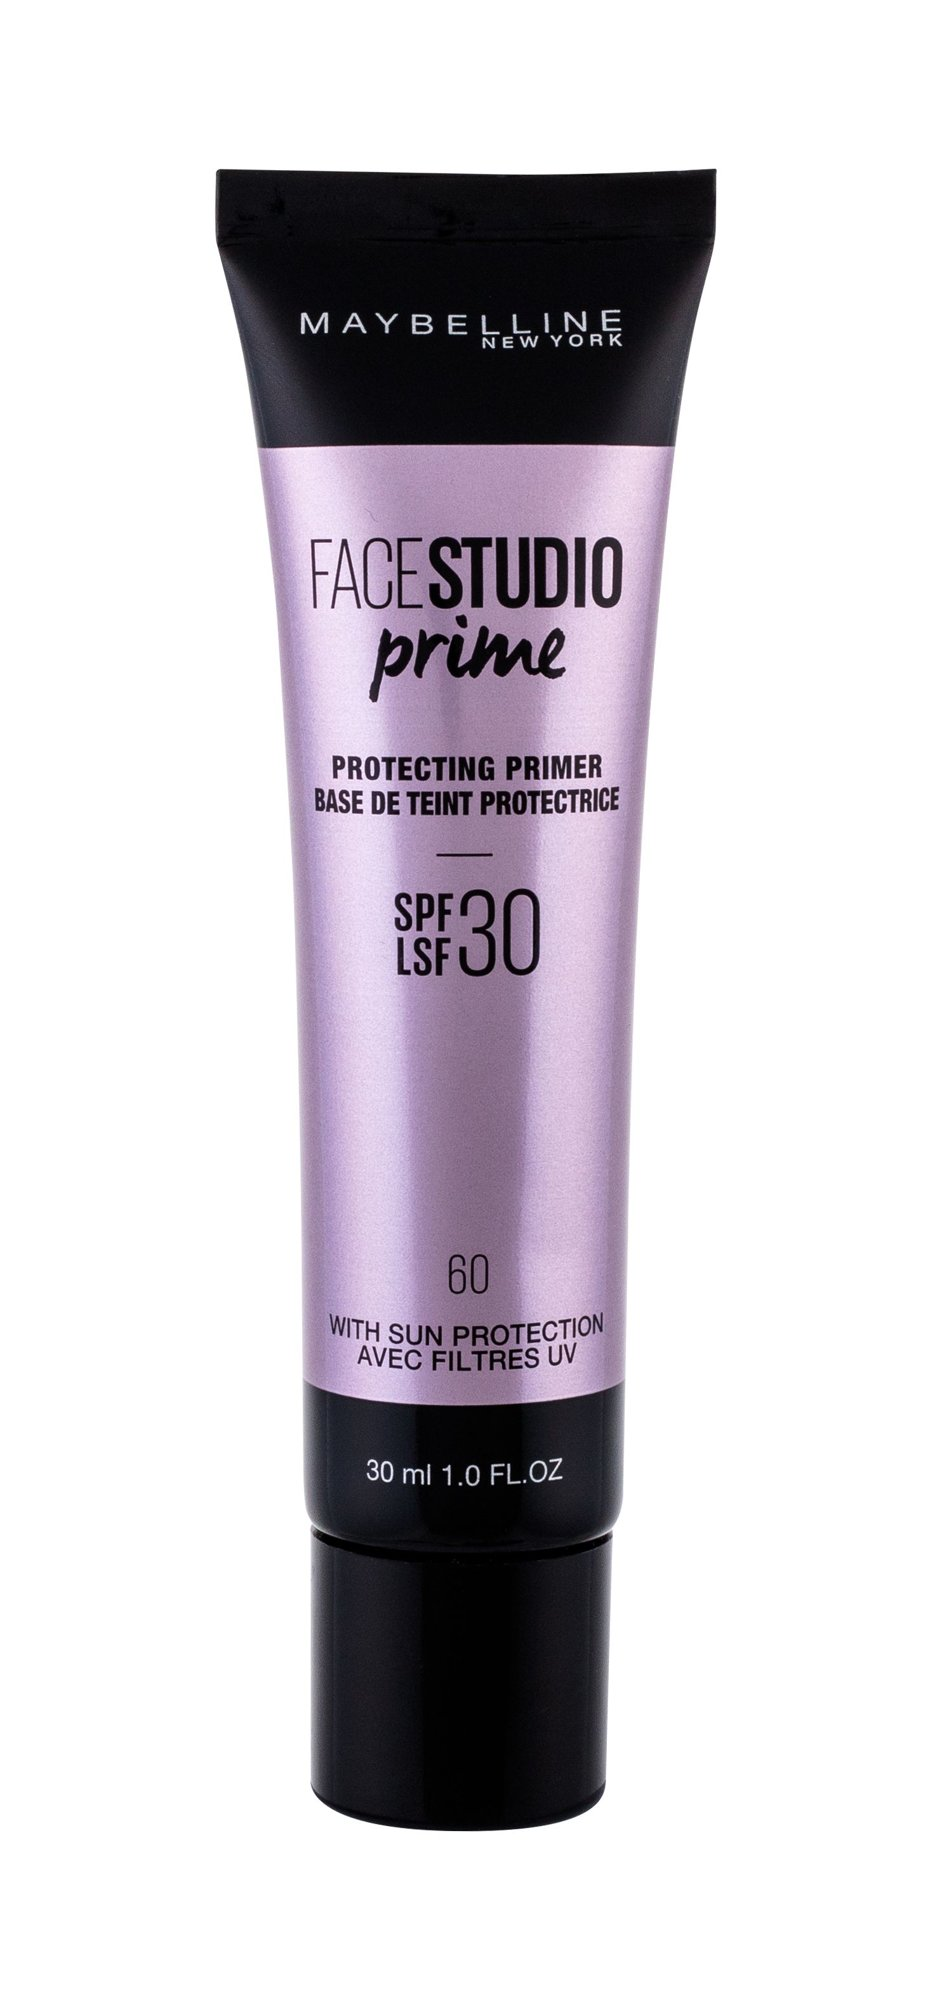 Maybelline FaceStudio Makeup Primer 30ml 60